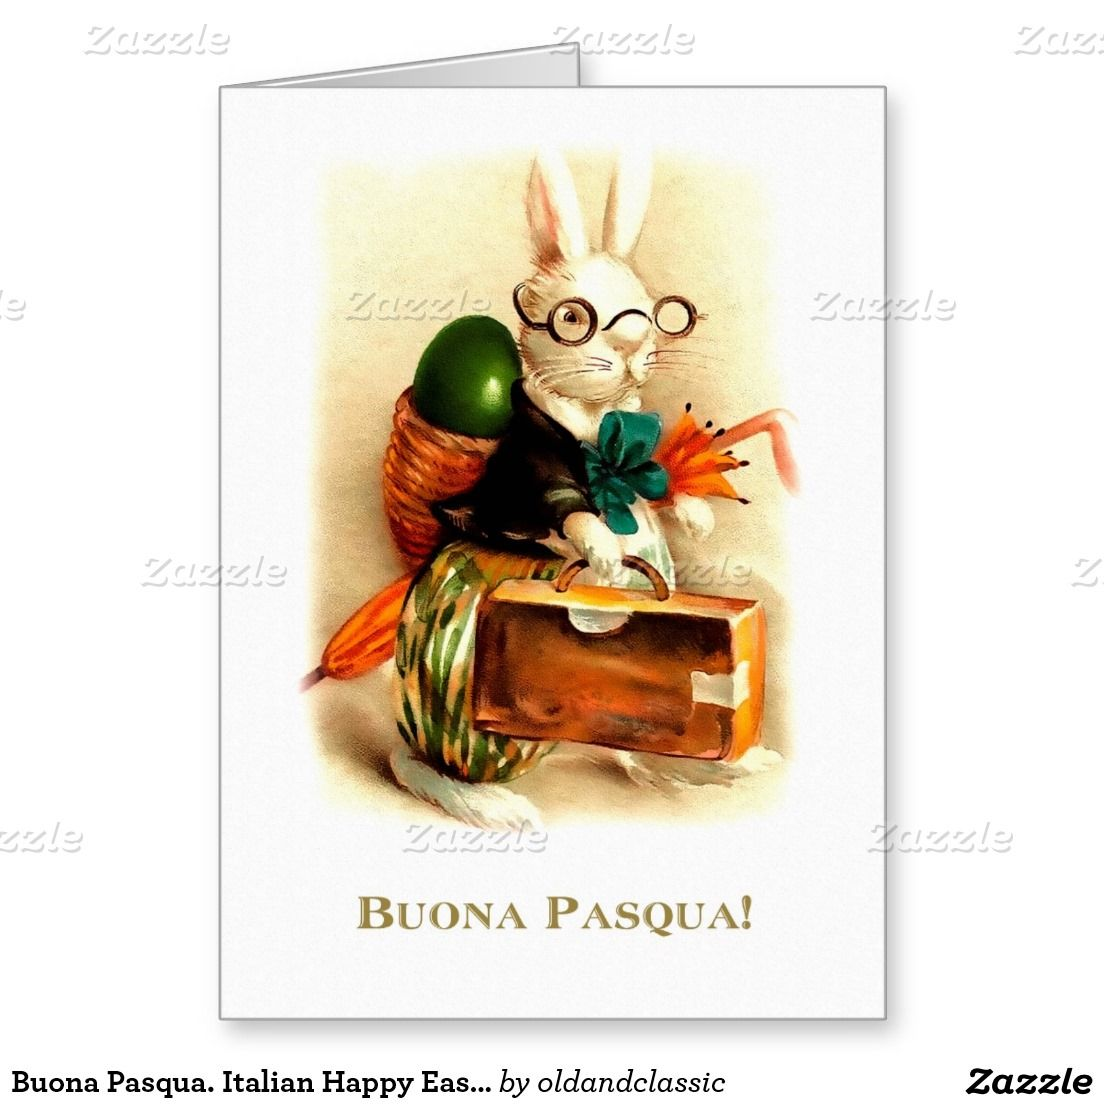 Buona Pasqua Customizable Easter Greeting Cards In Italian With A